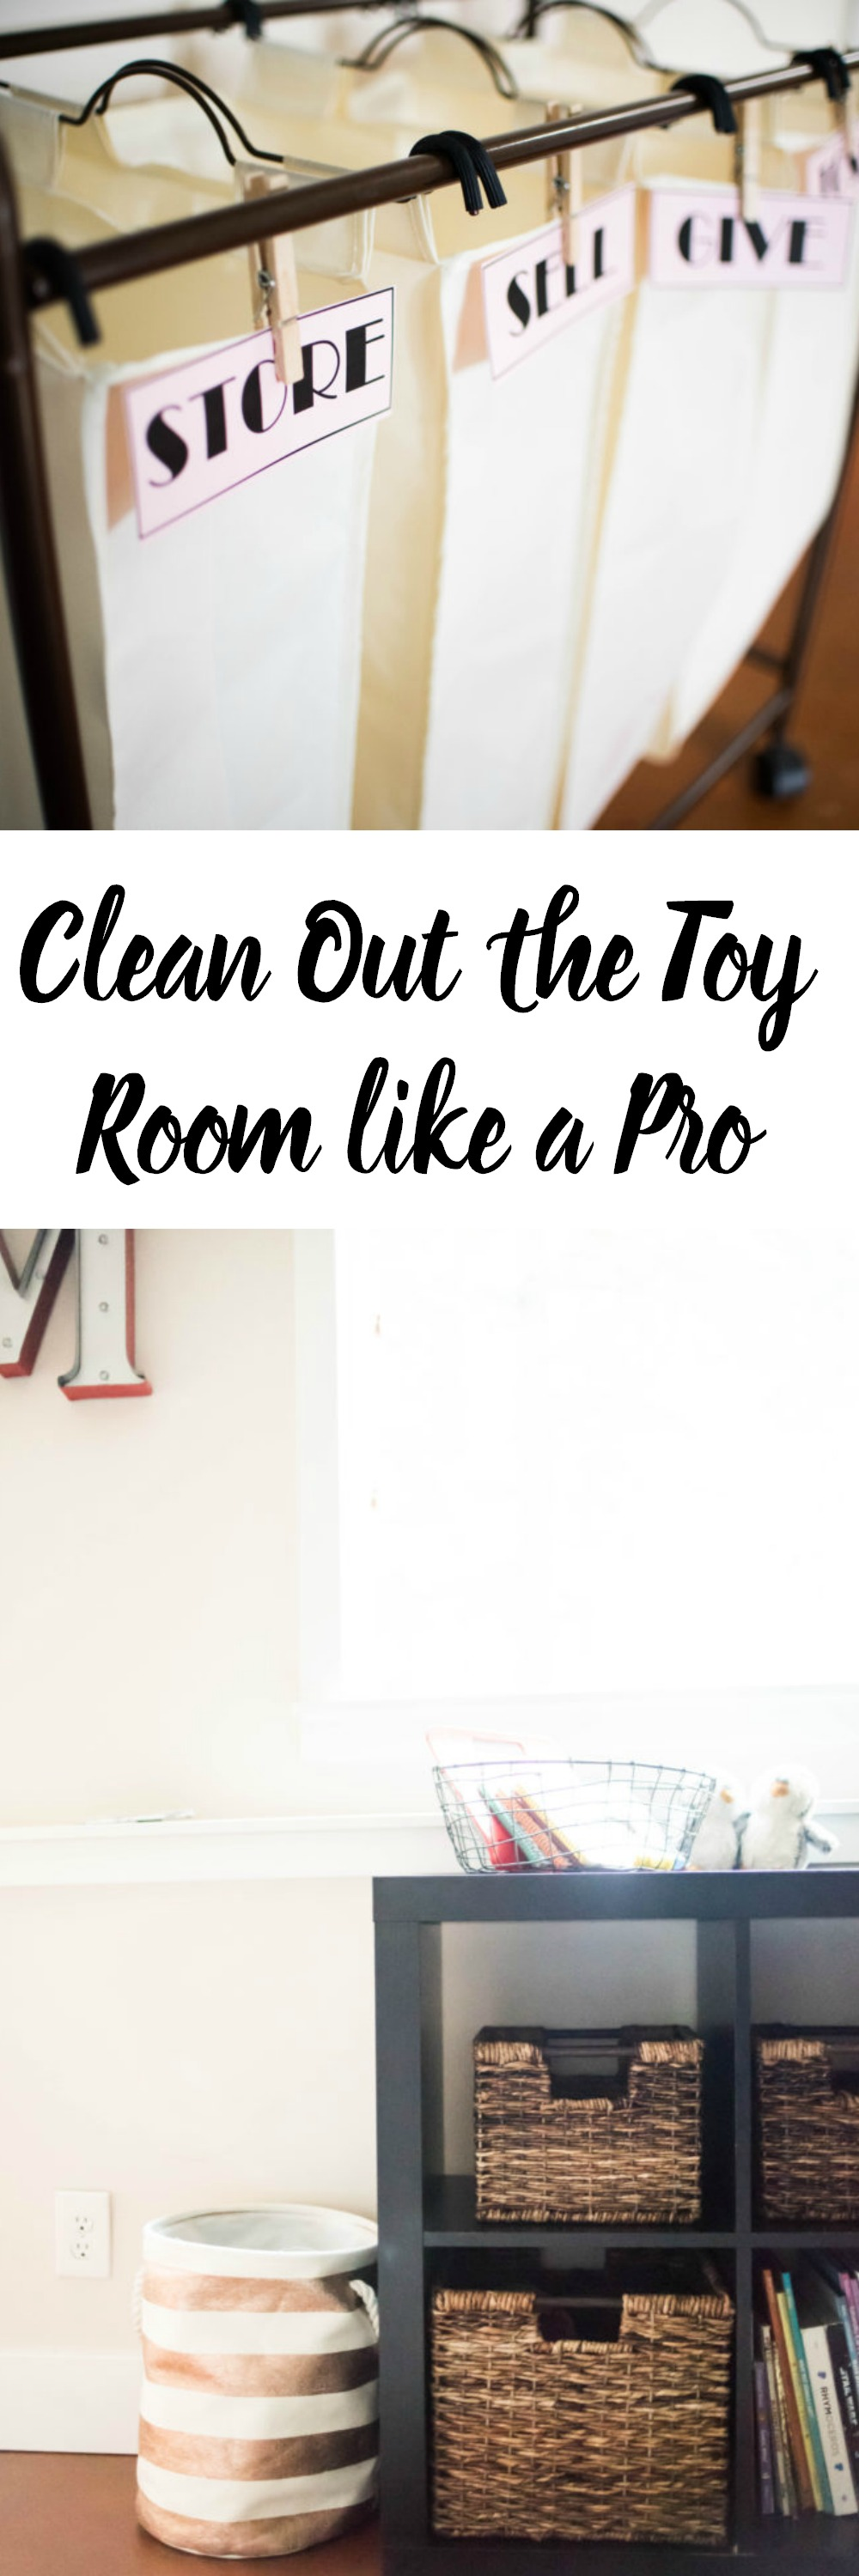 Clean Out the Toy Room like a Pro